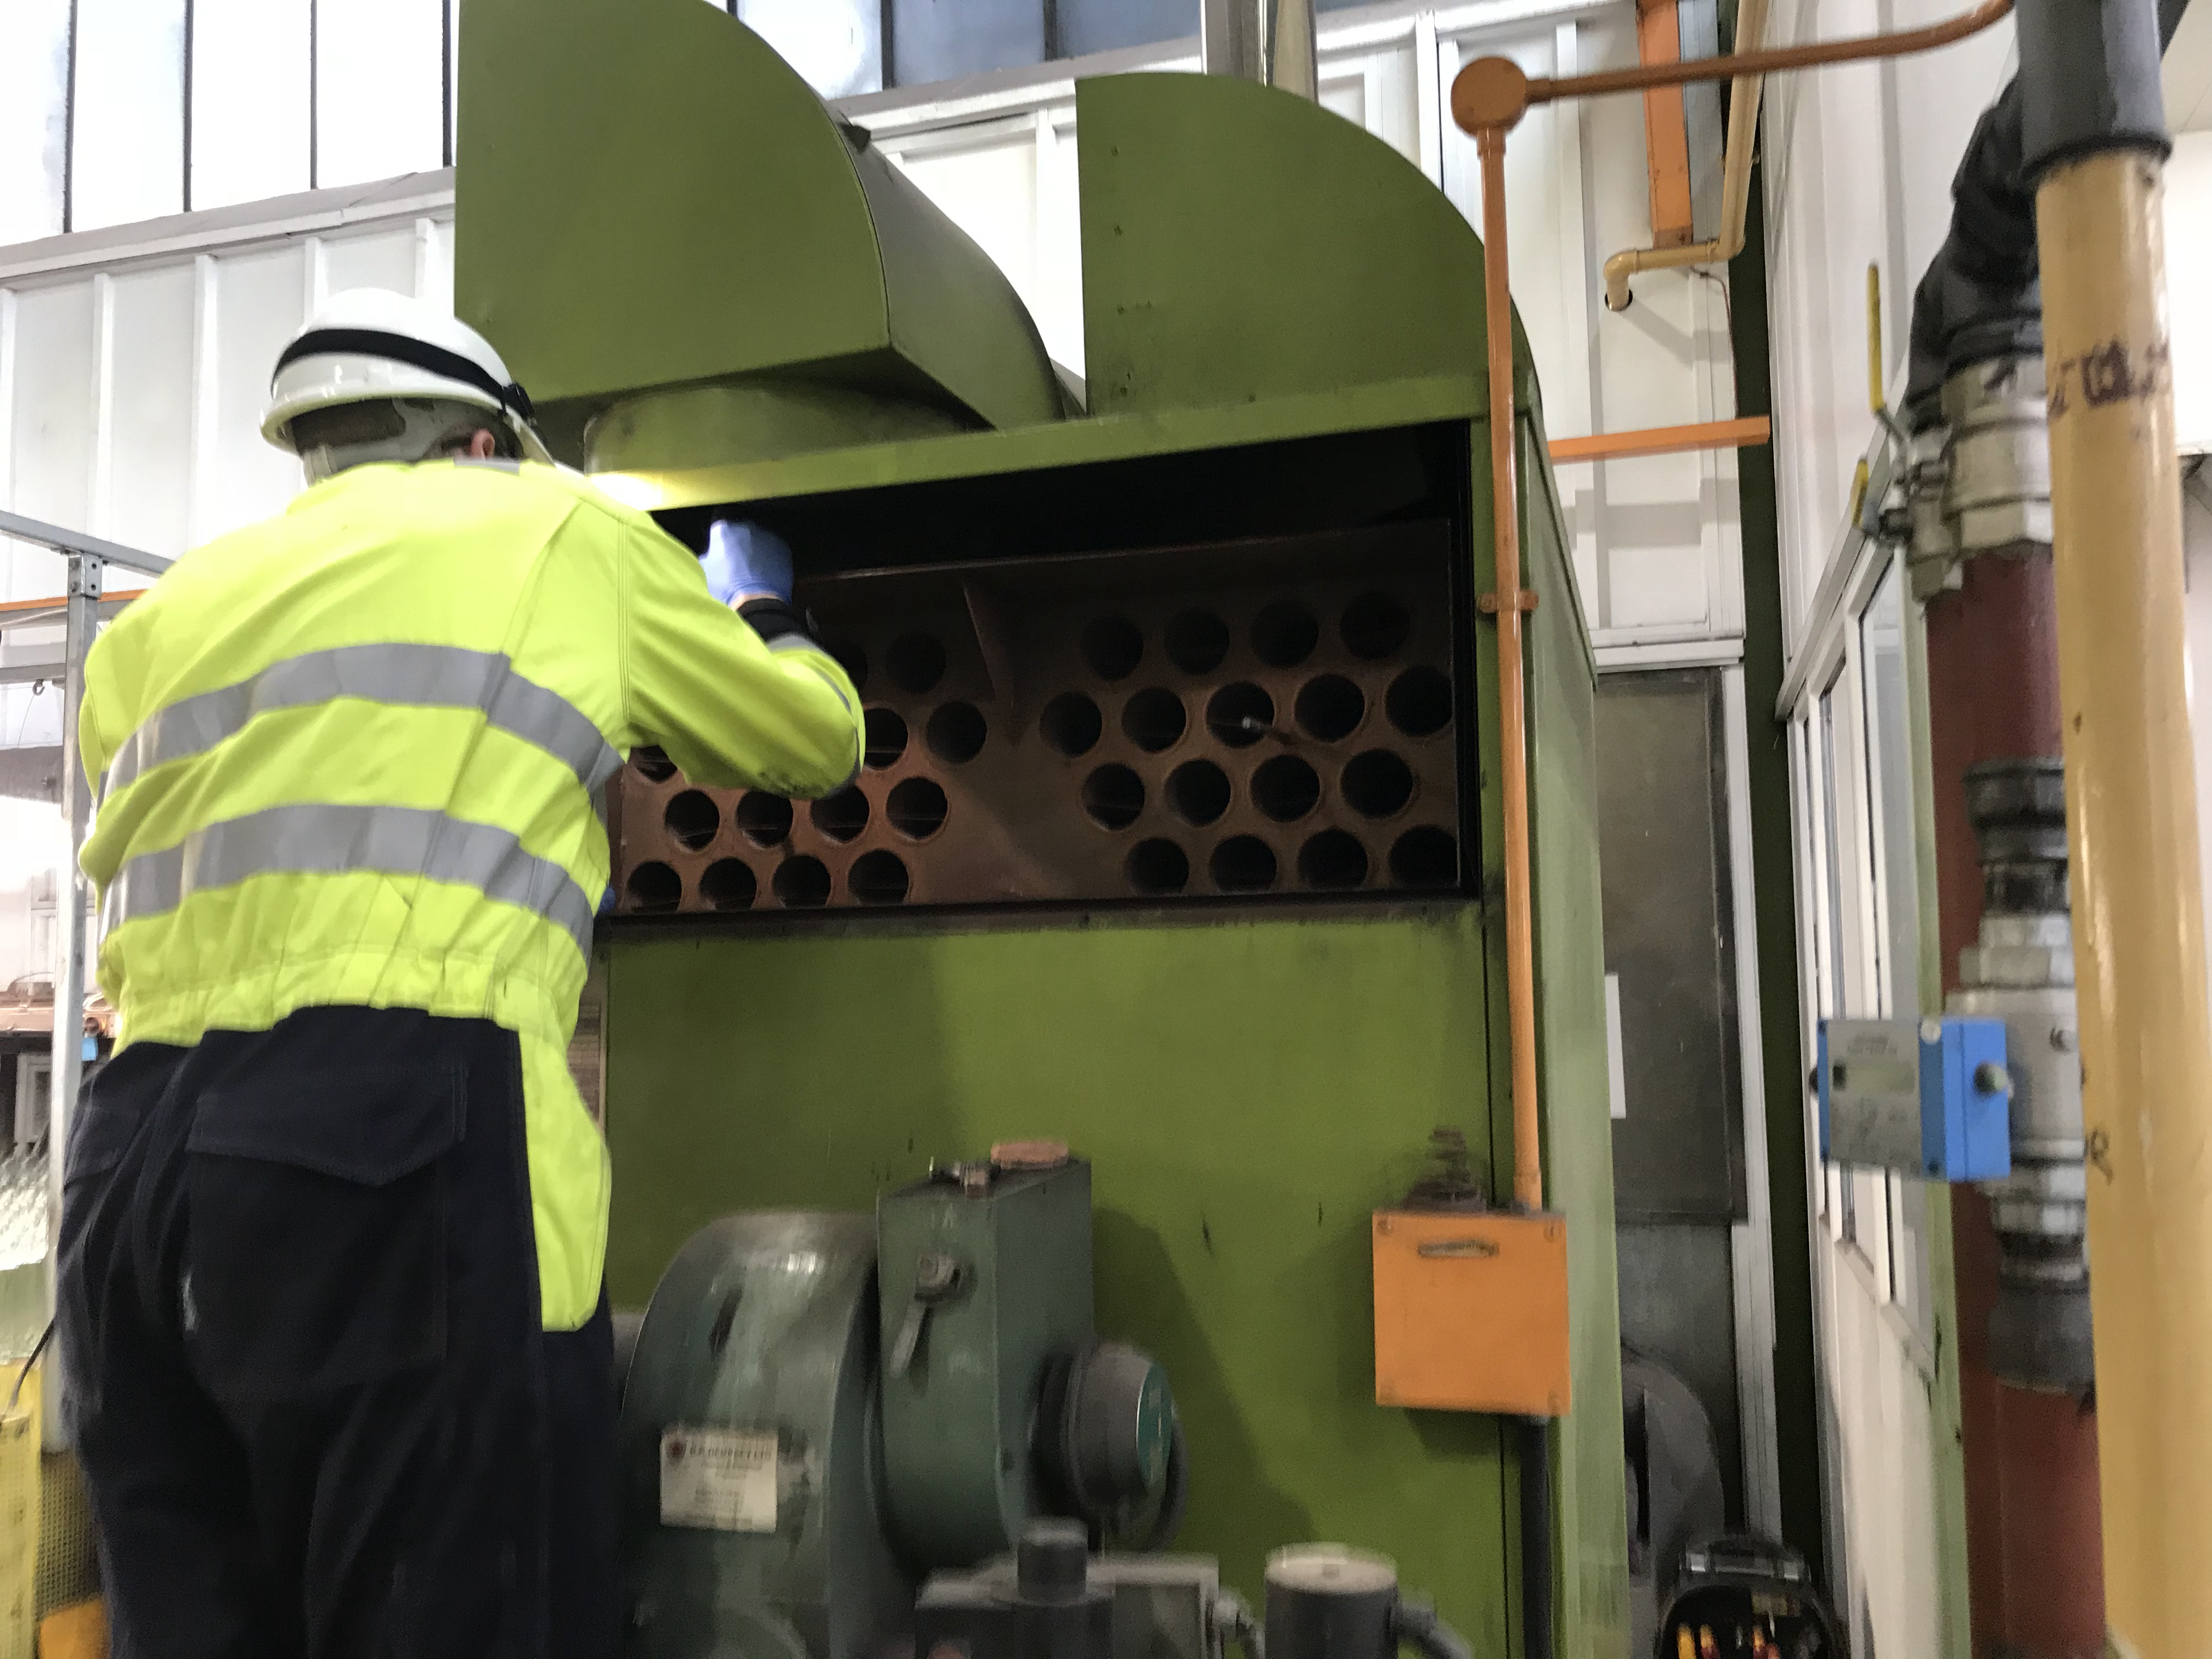 Industrial Heater Repair